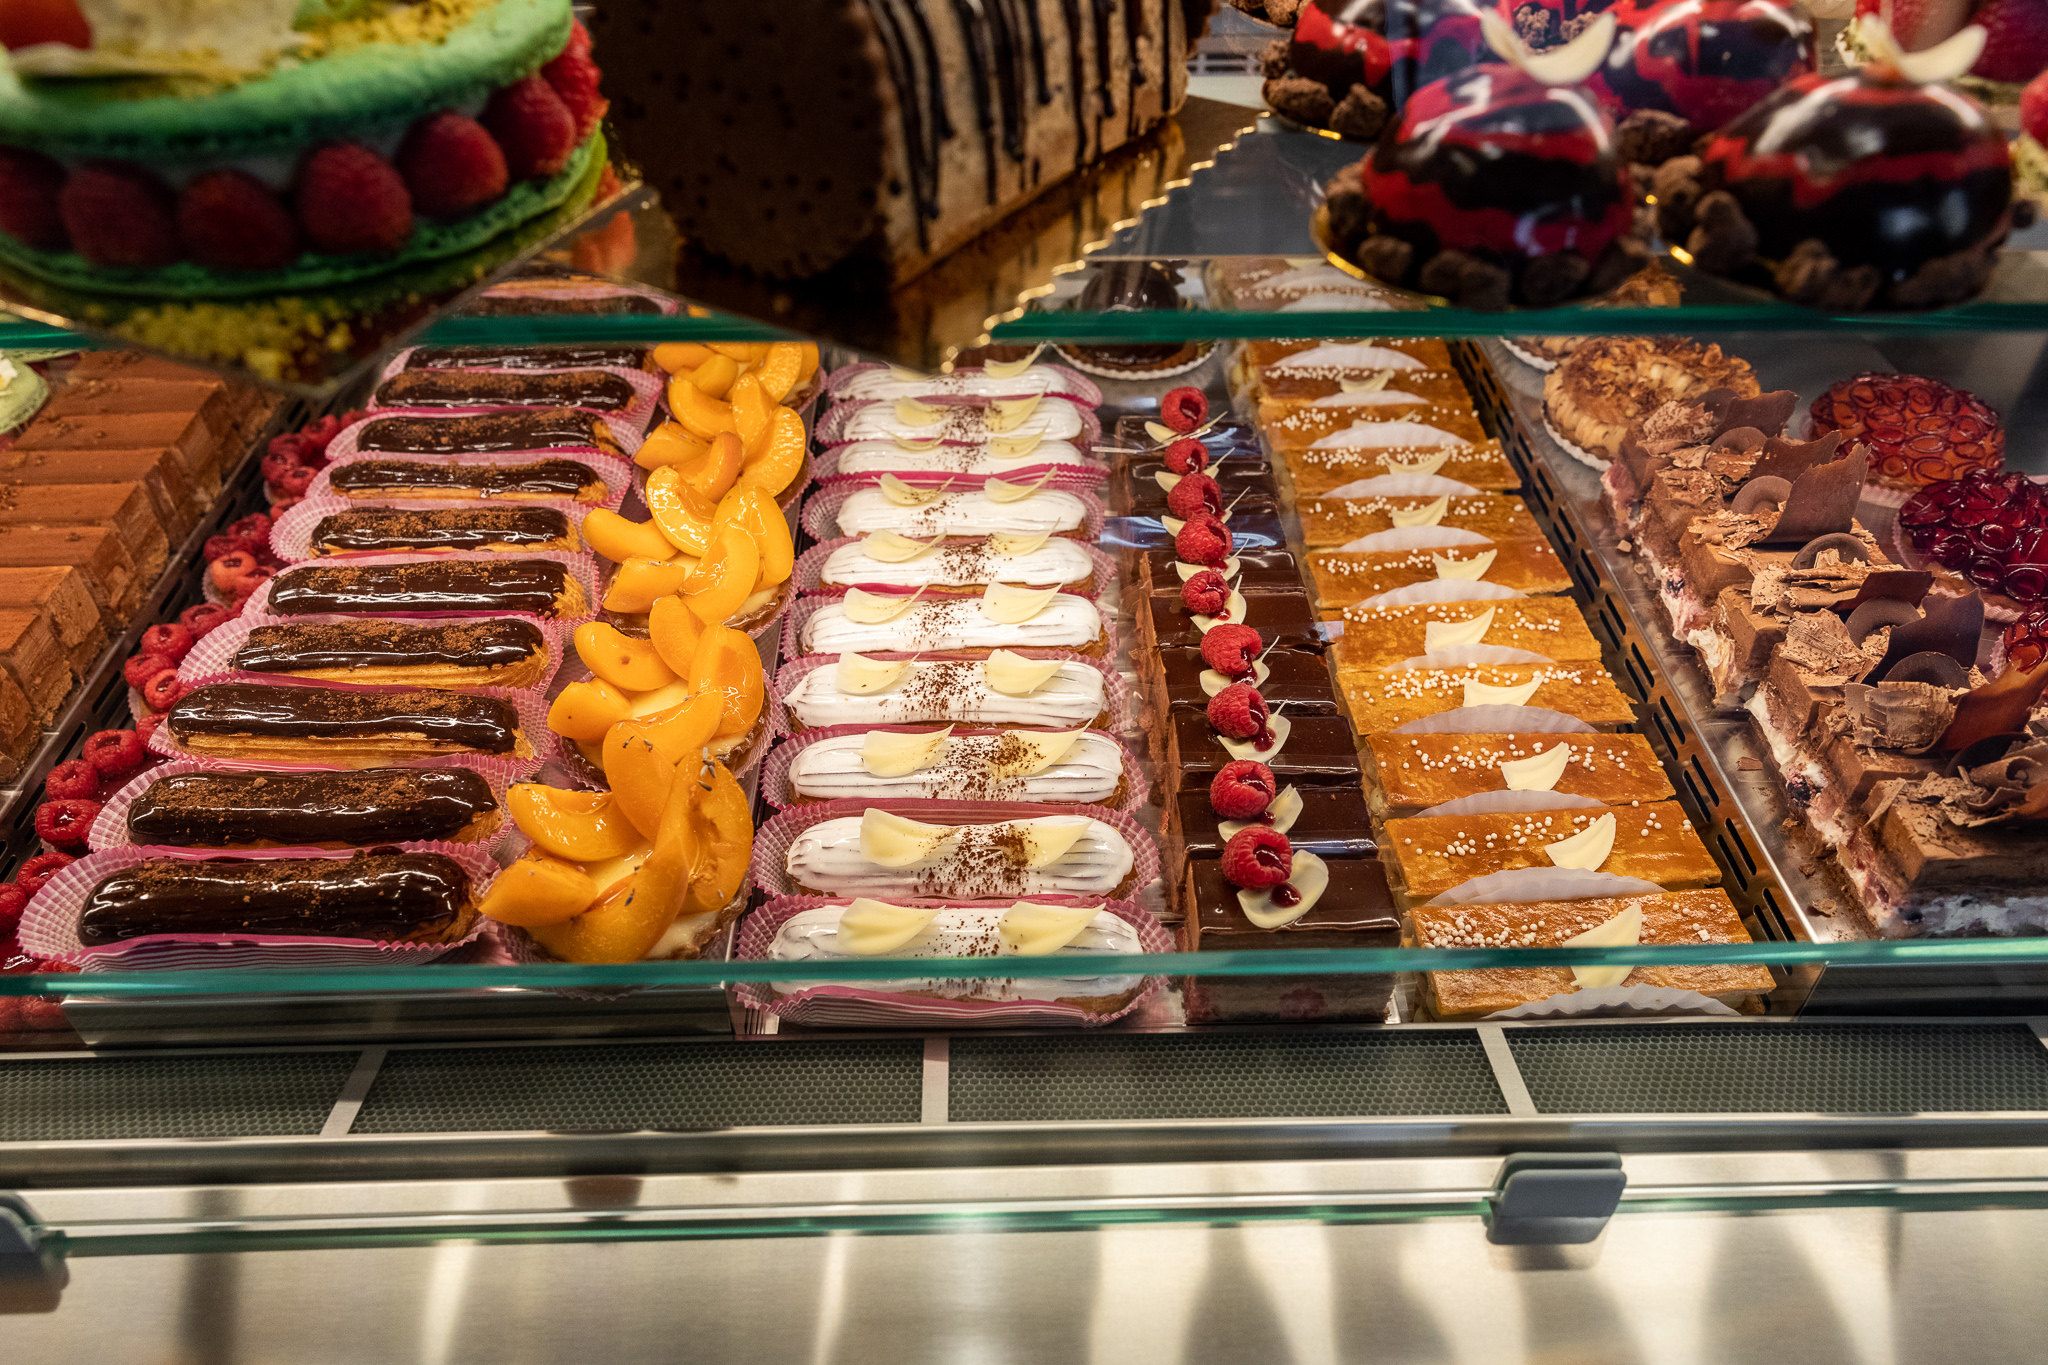 Rows of eclairs and other French pastries inside the Cannelle pastry case.